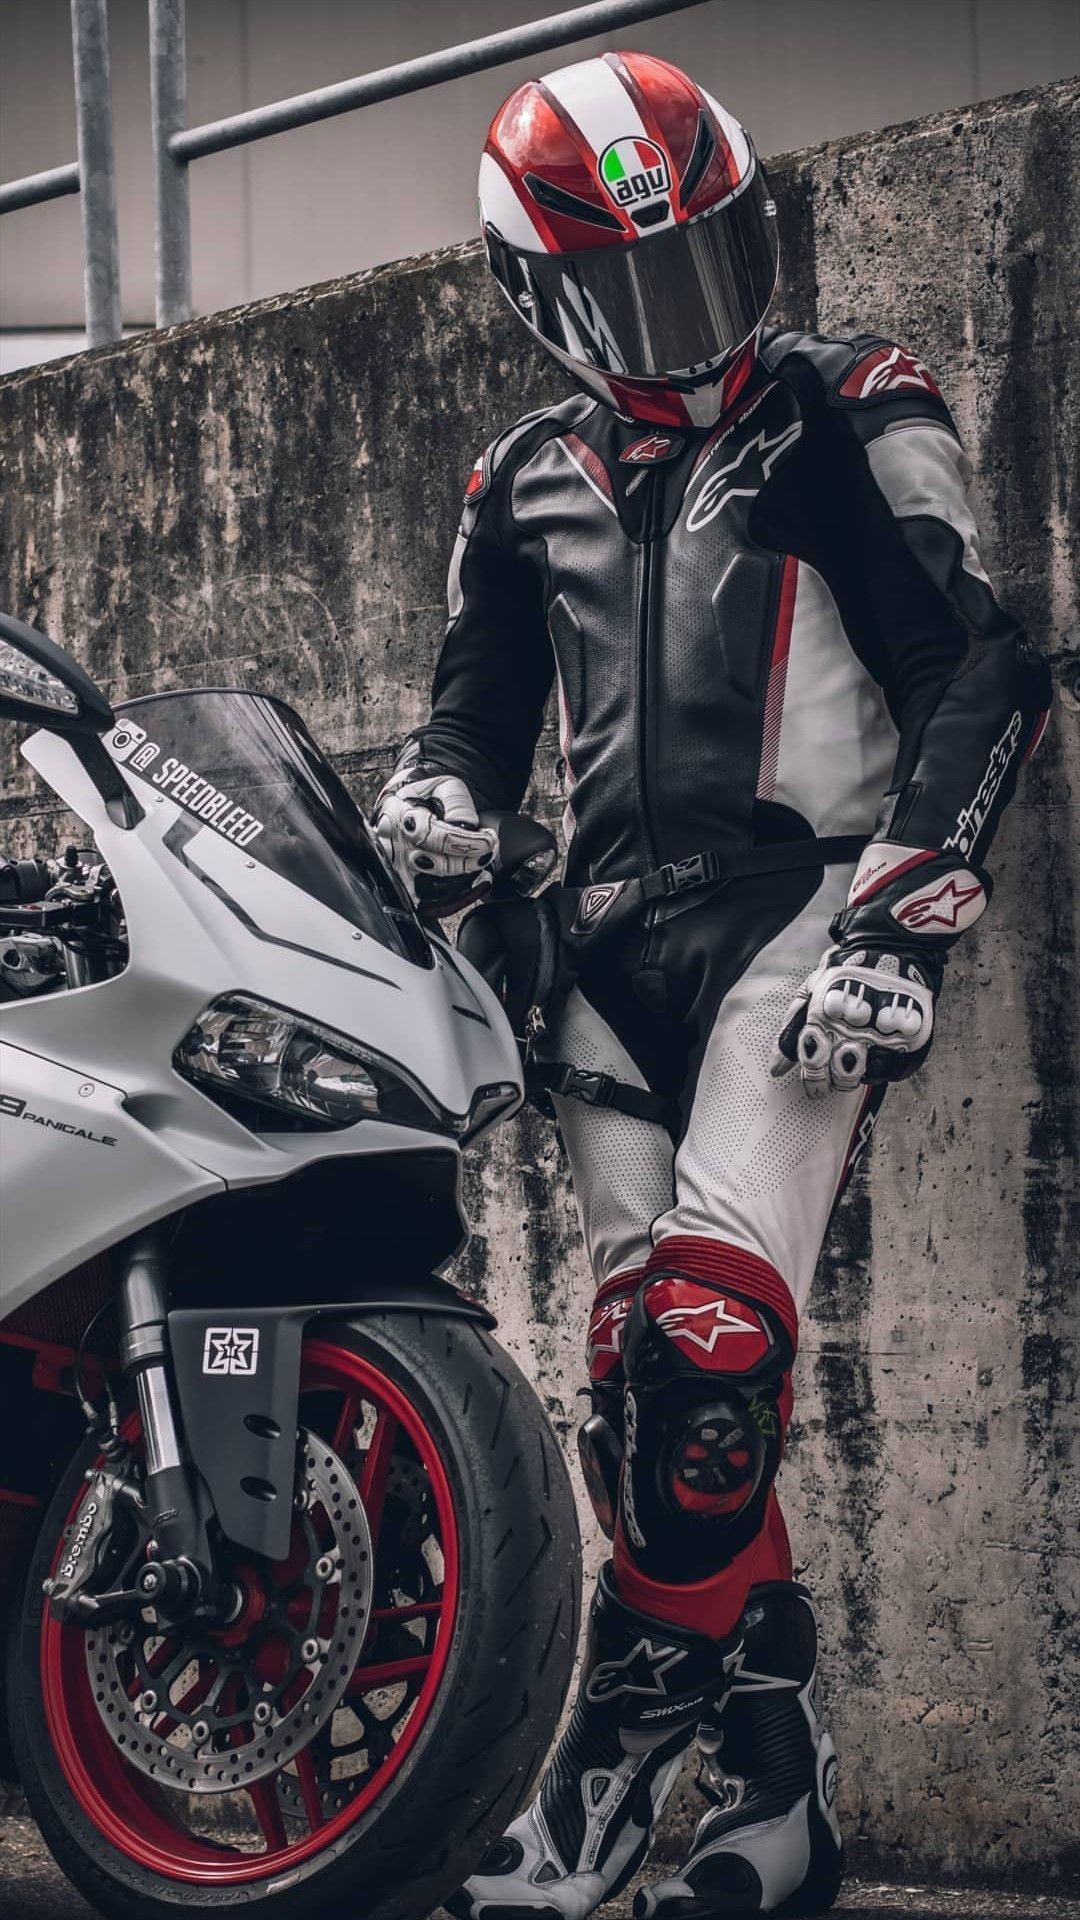 Pin by NitMae on Bikes Sport bikes, Bike photoshoot